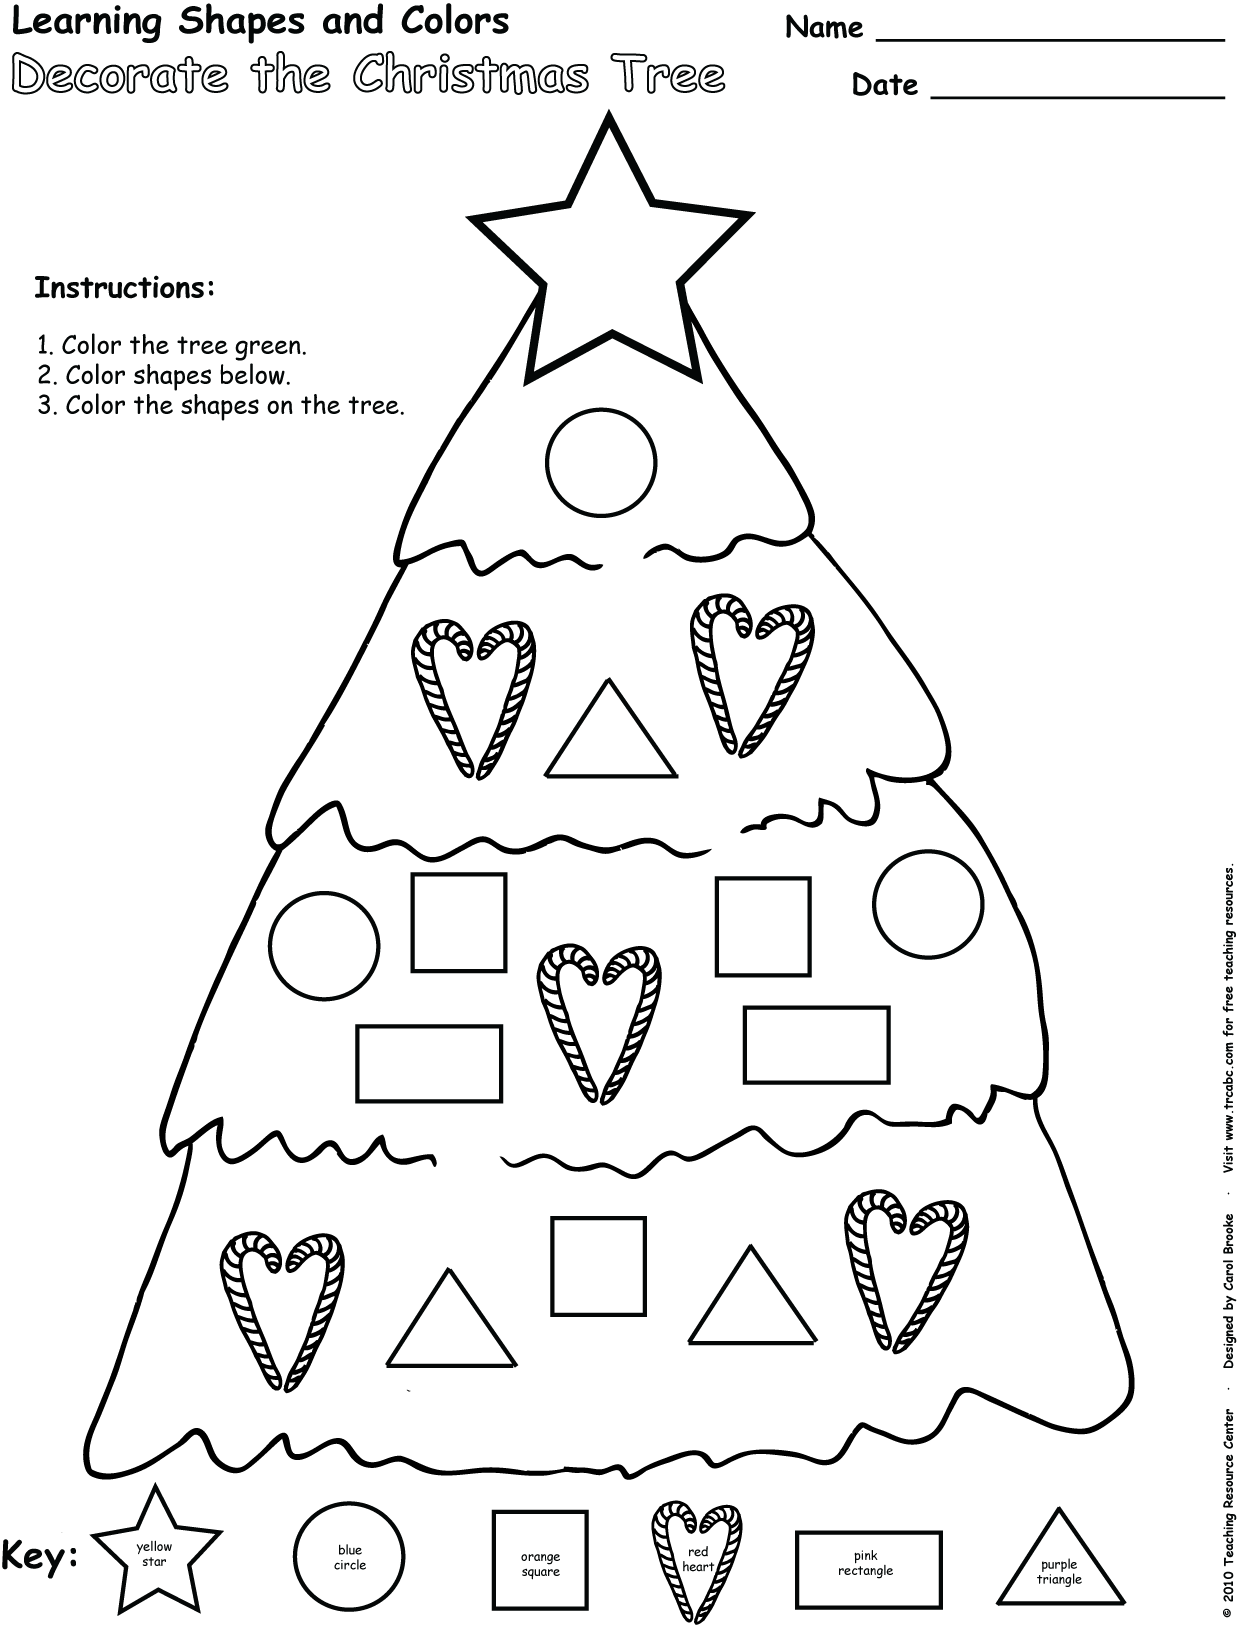 Blog Christmastree Learningshapesandcolors